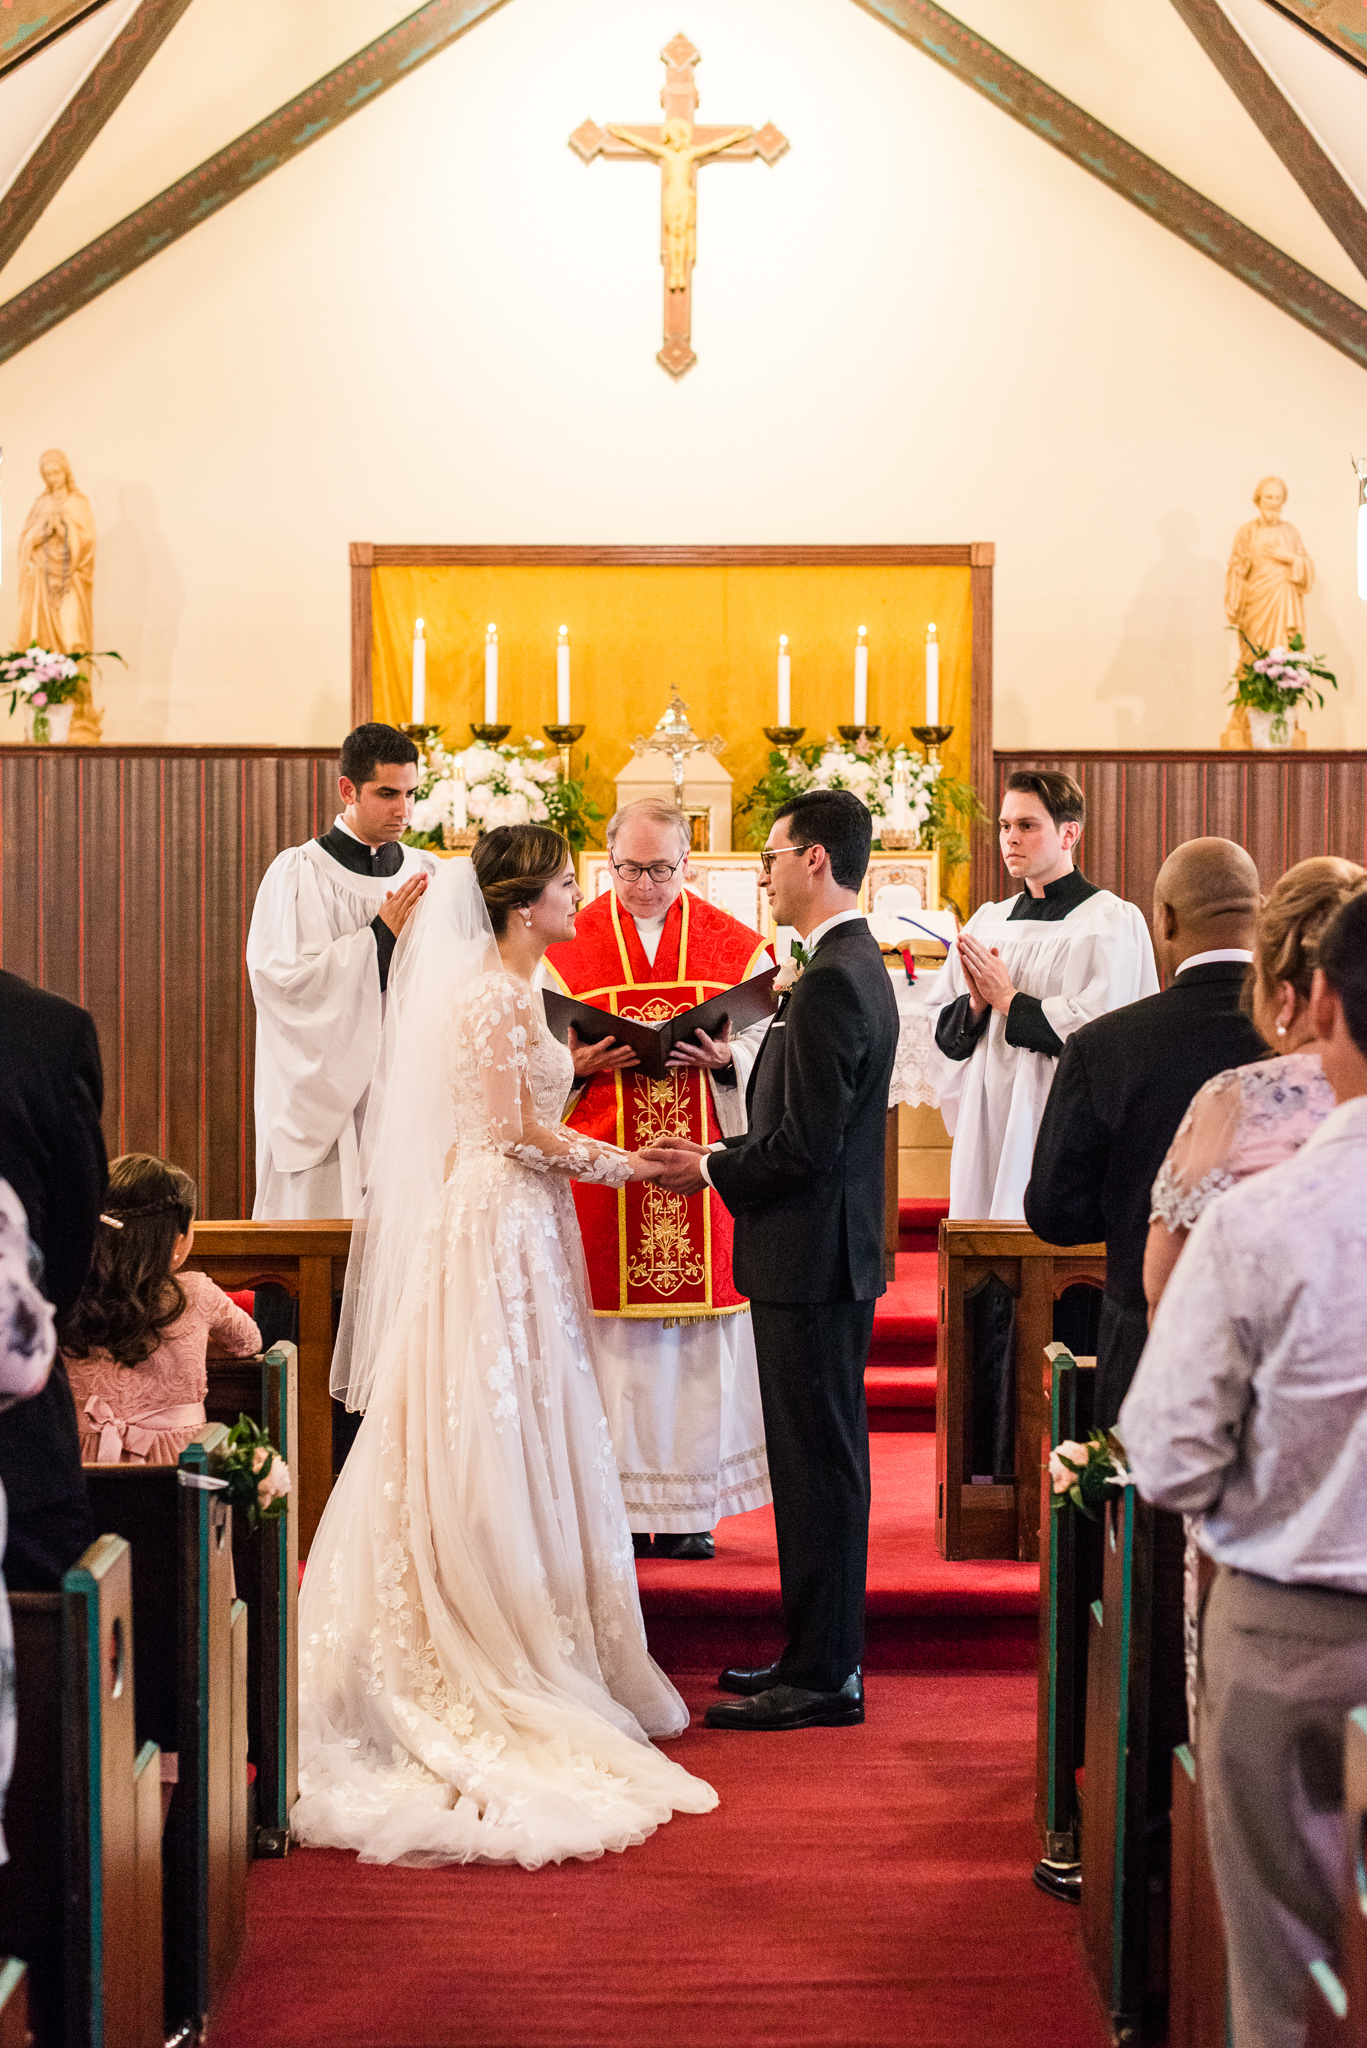 A bride and groom profess their vows at the altar during a Catholic wedding ceremony at the Chapel of Immaculate Conception in Leesburg, Northern Virginia